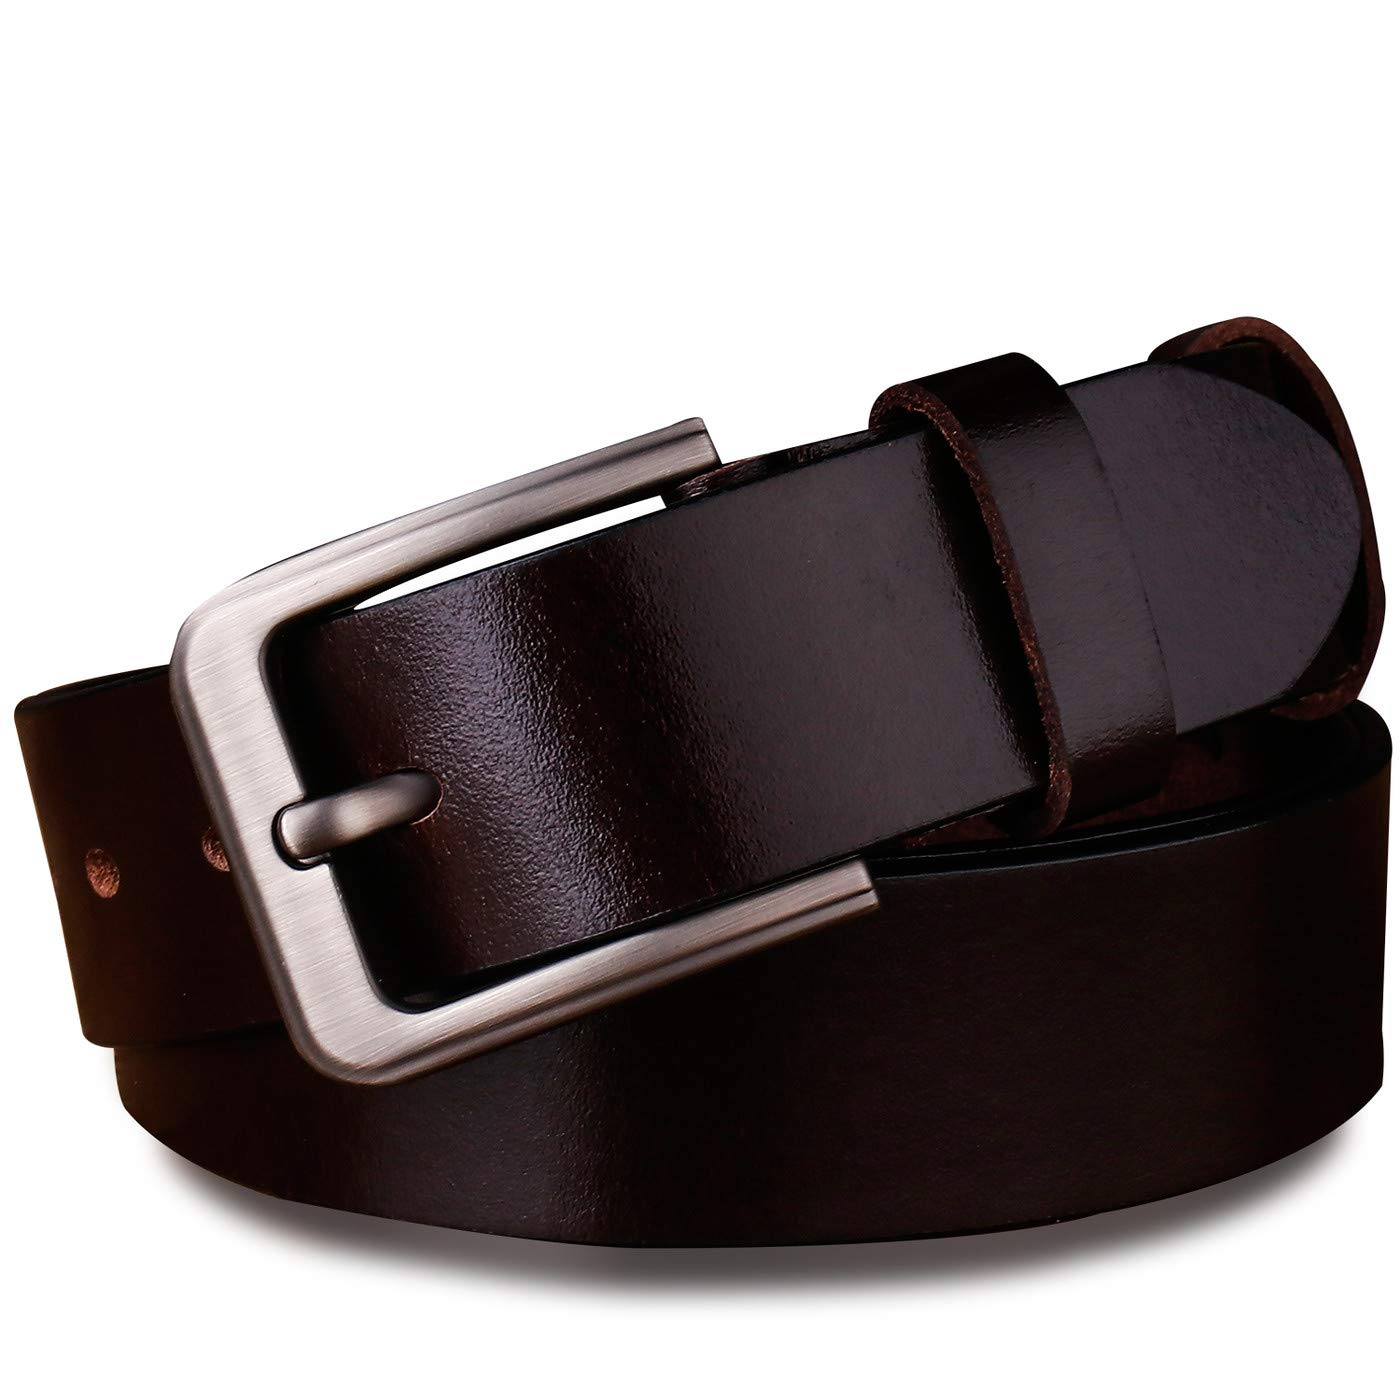 Youngate Mens Genuine Leather Dress Belt Classic Stitched Design Black Brown